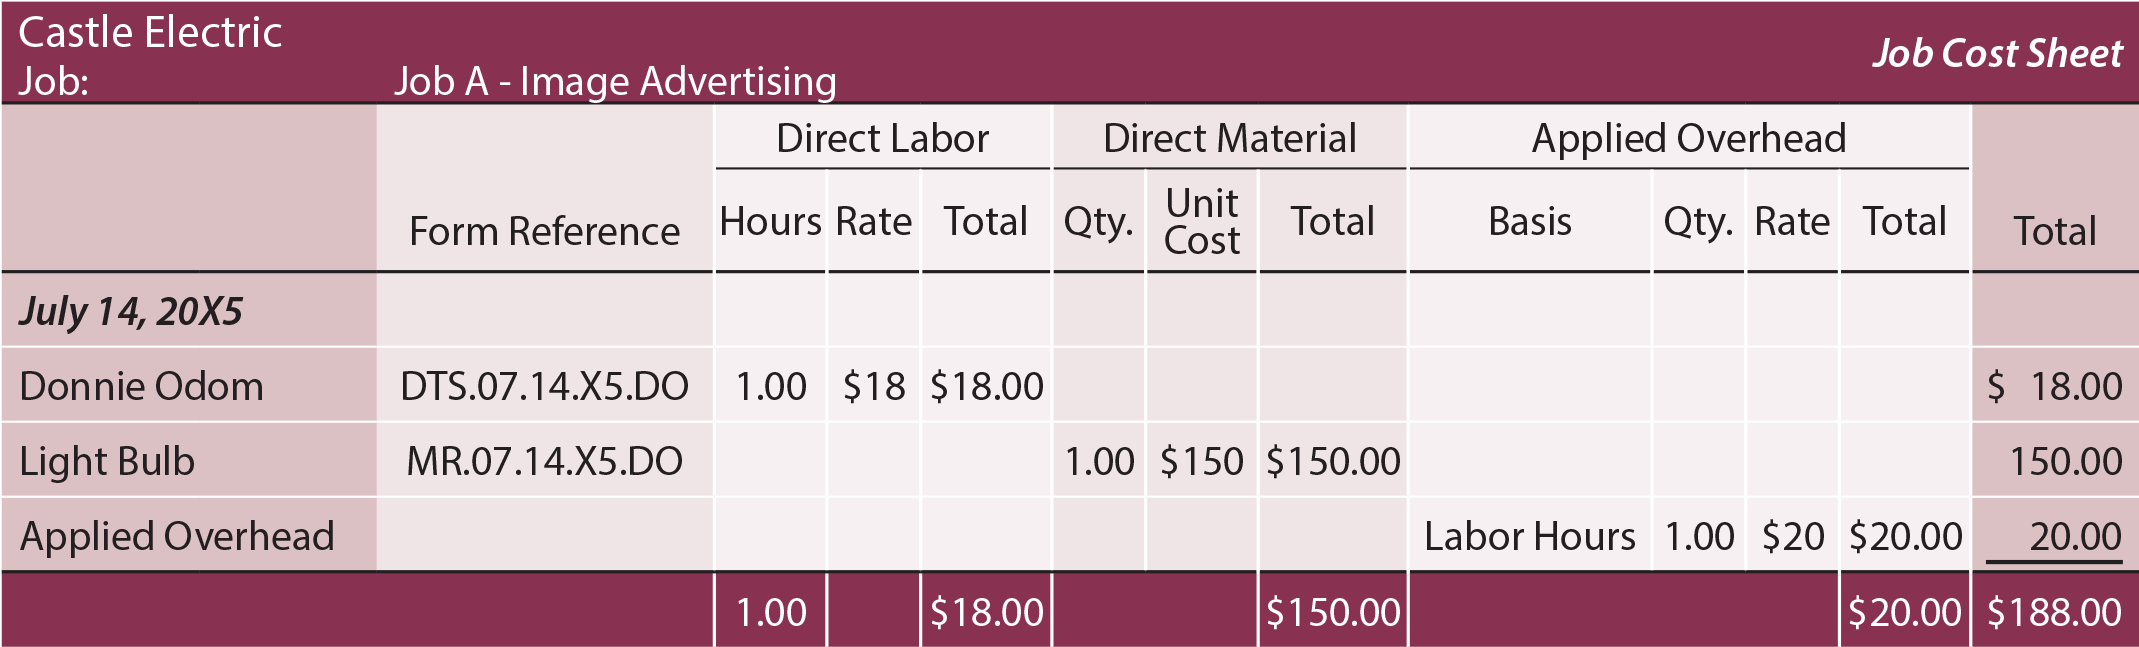 Job Costing Sheet - Job A